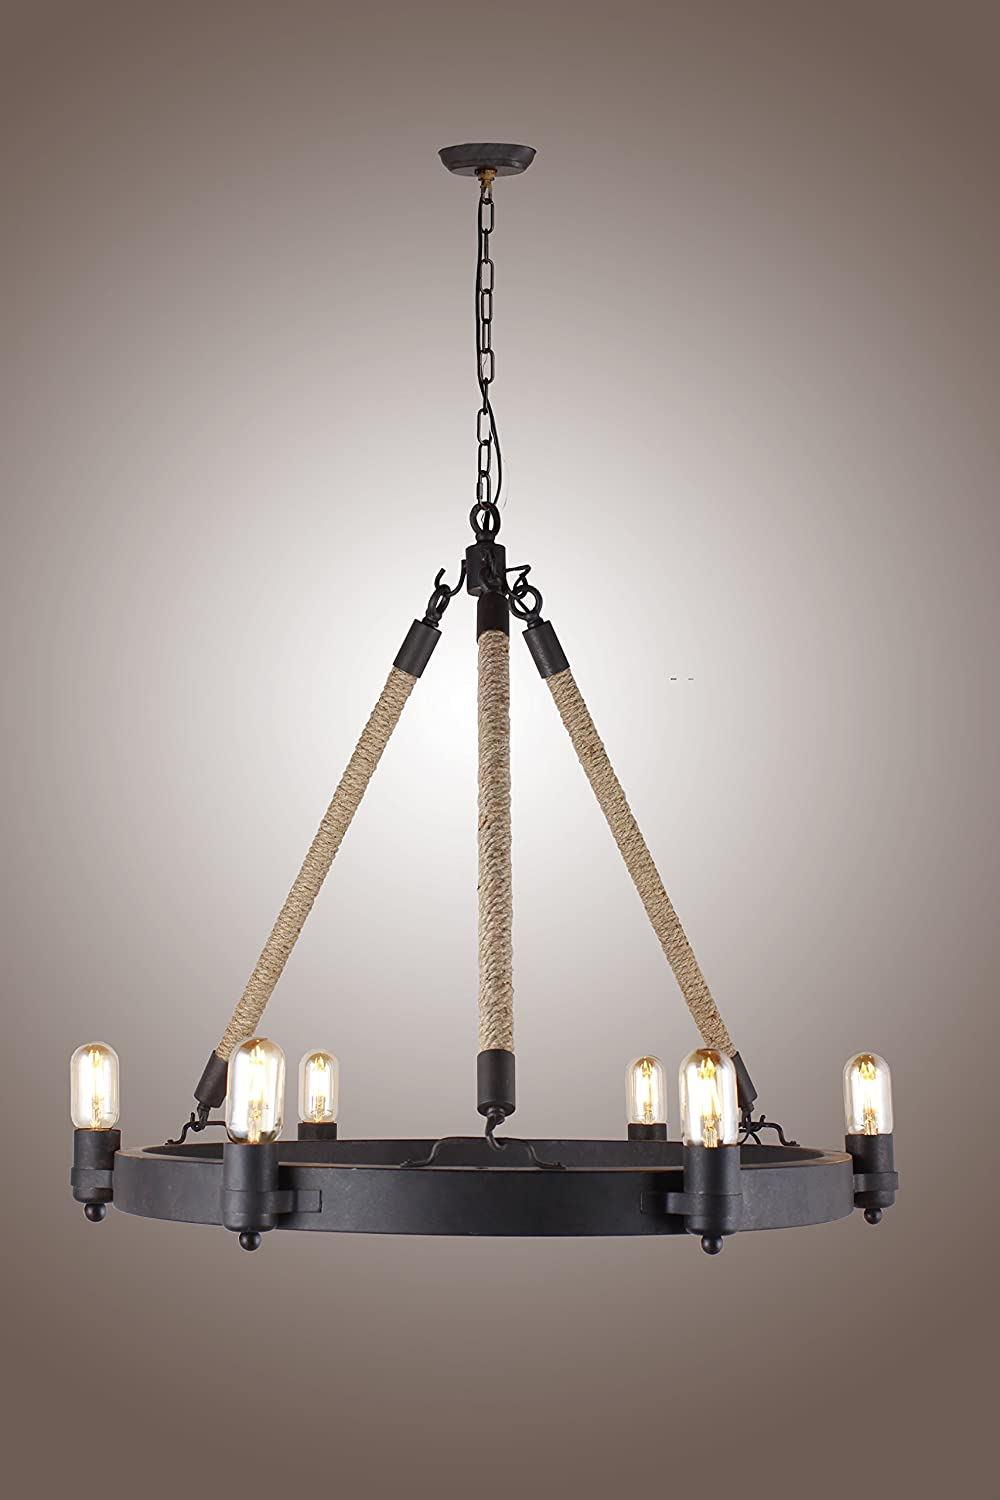 Deluxe Lamp Rancheria Falls 6 Light Candle Chandelier Antique with Rope Pendant